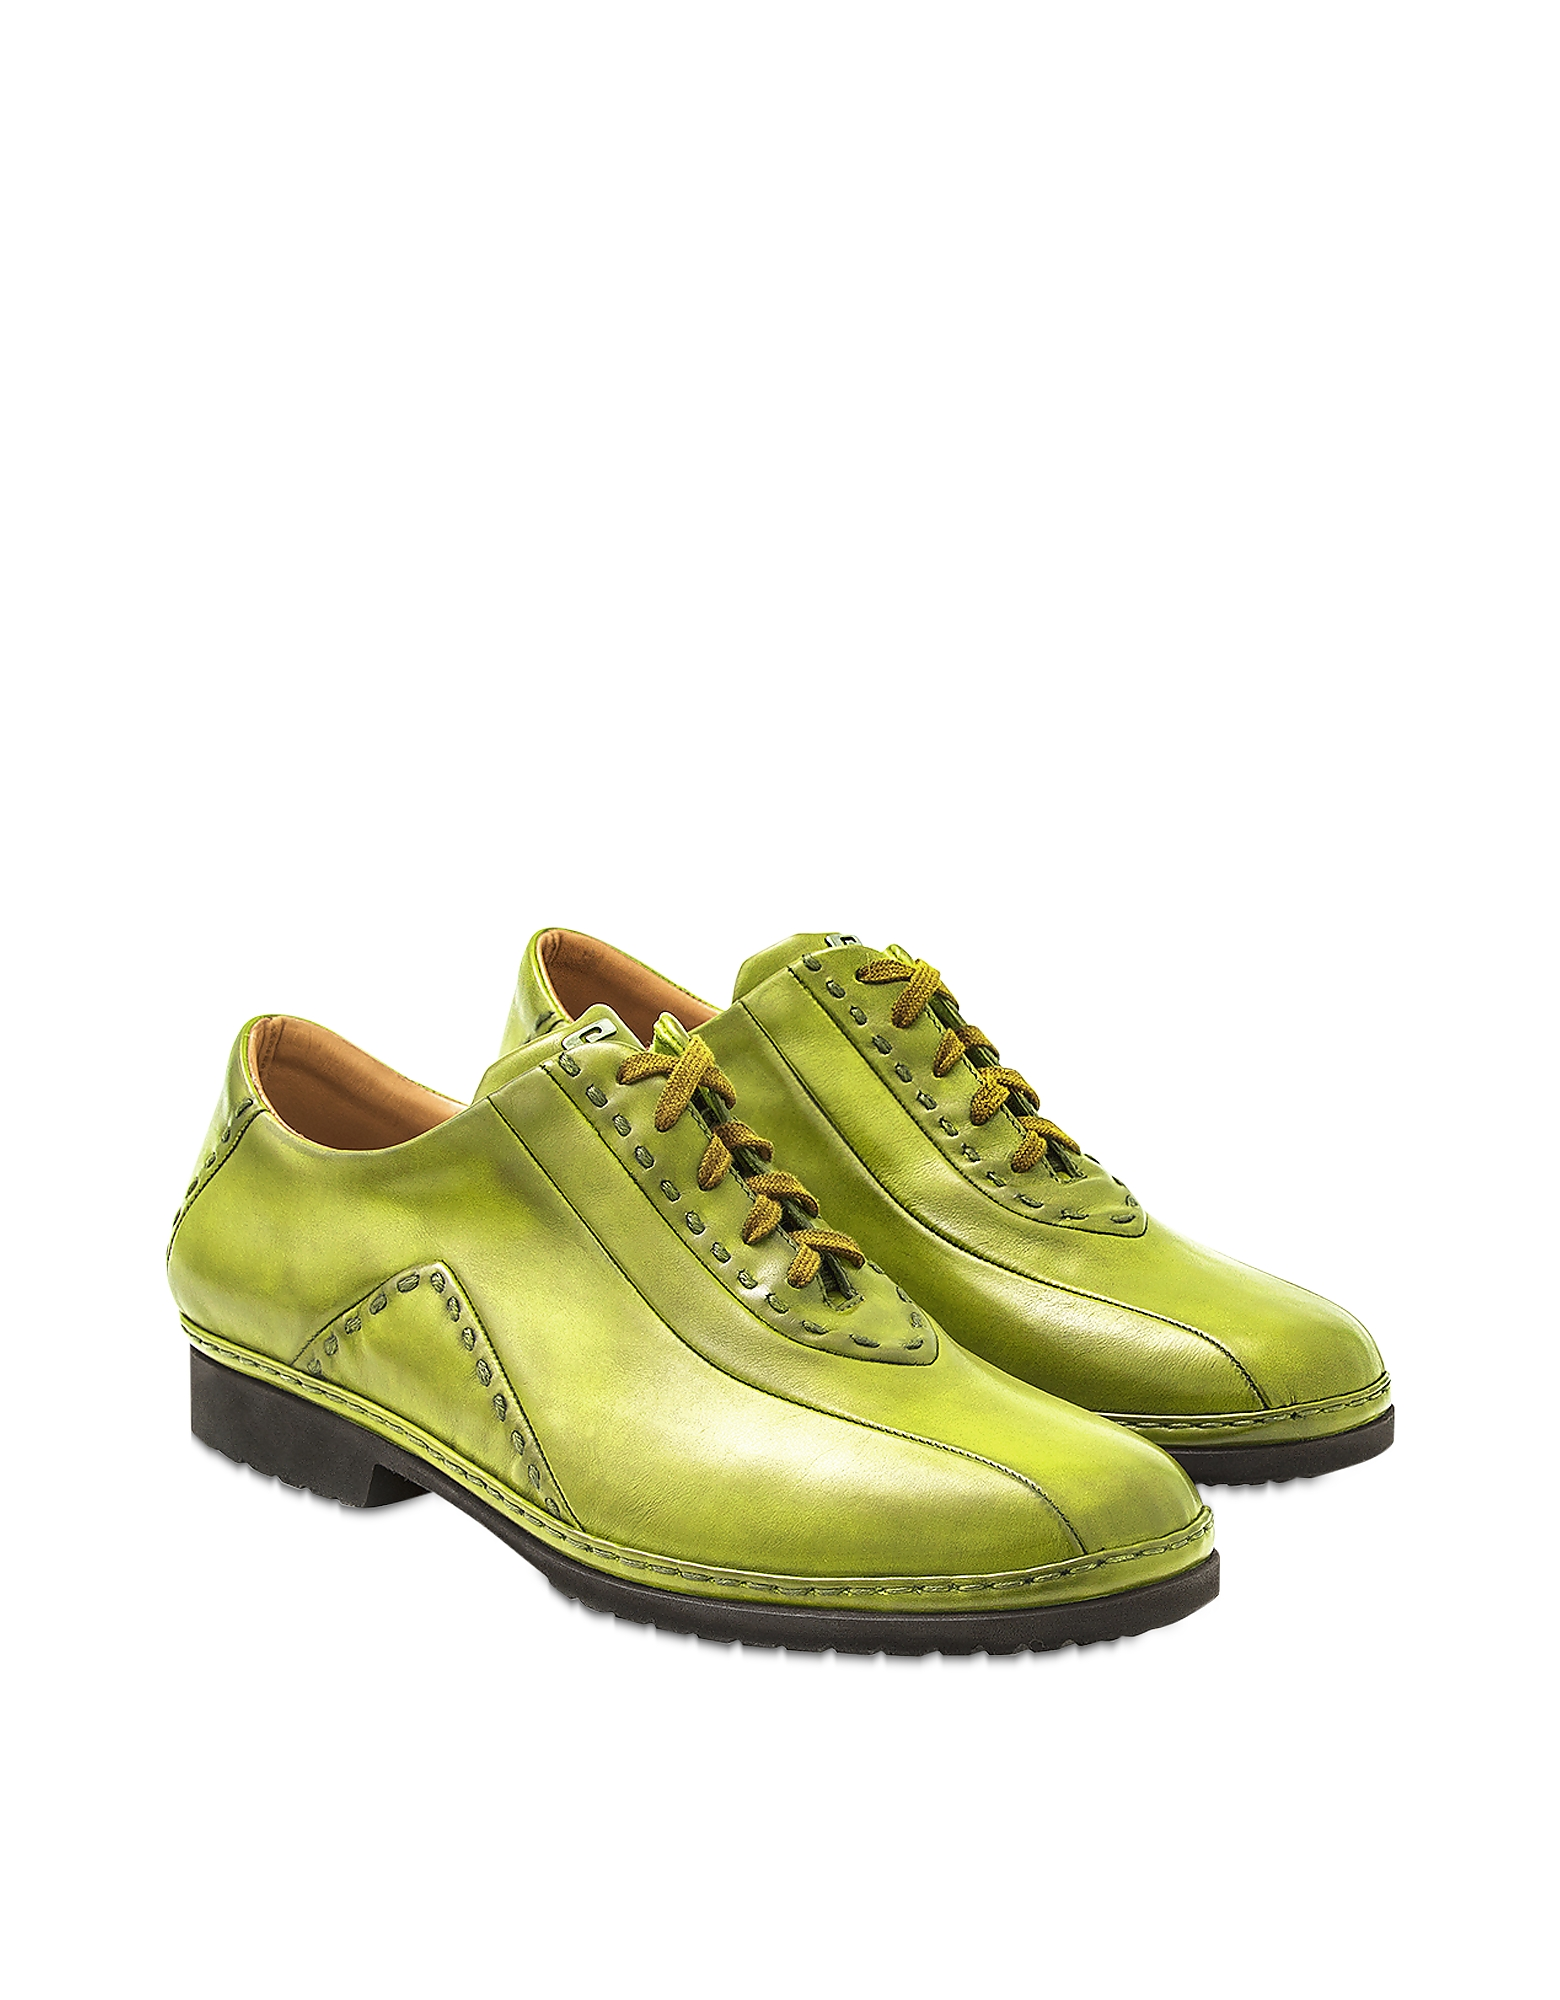 Pakerson Designer Shoes, Pistachio Italian Hand Made Calf Leather Lace-up Shoes